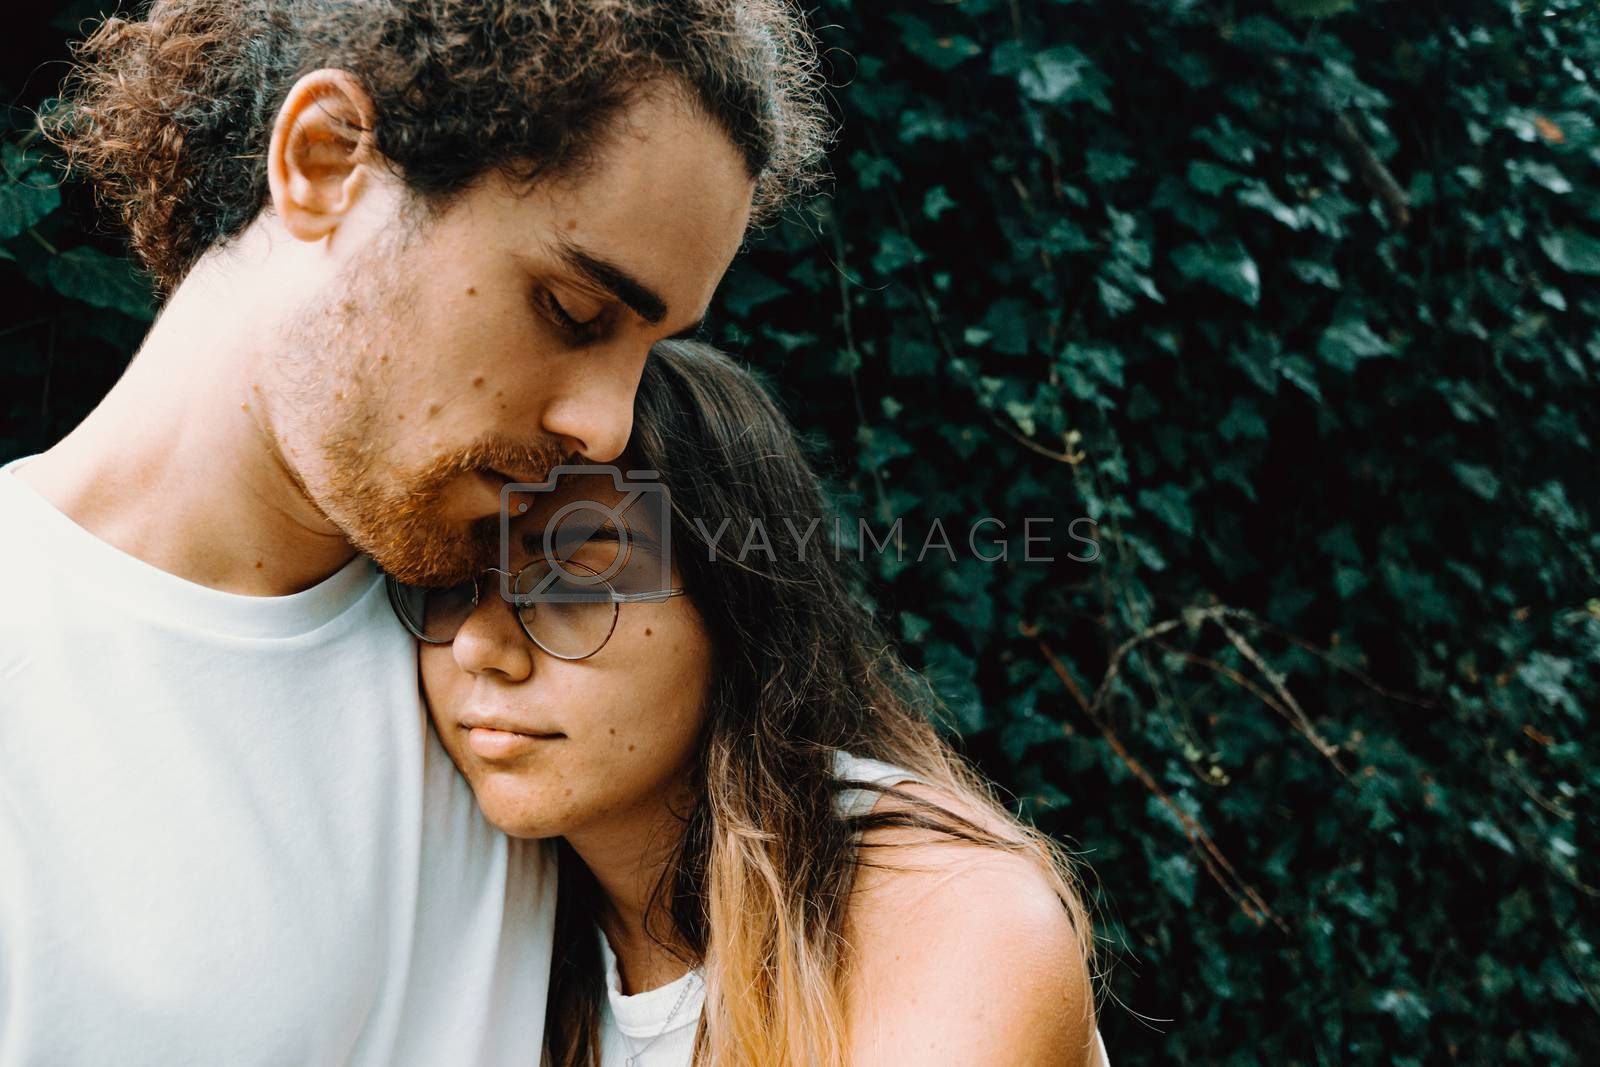 A young and natural spanish couple hugging each other in front of some leaves